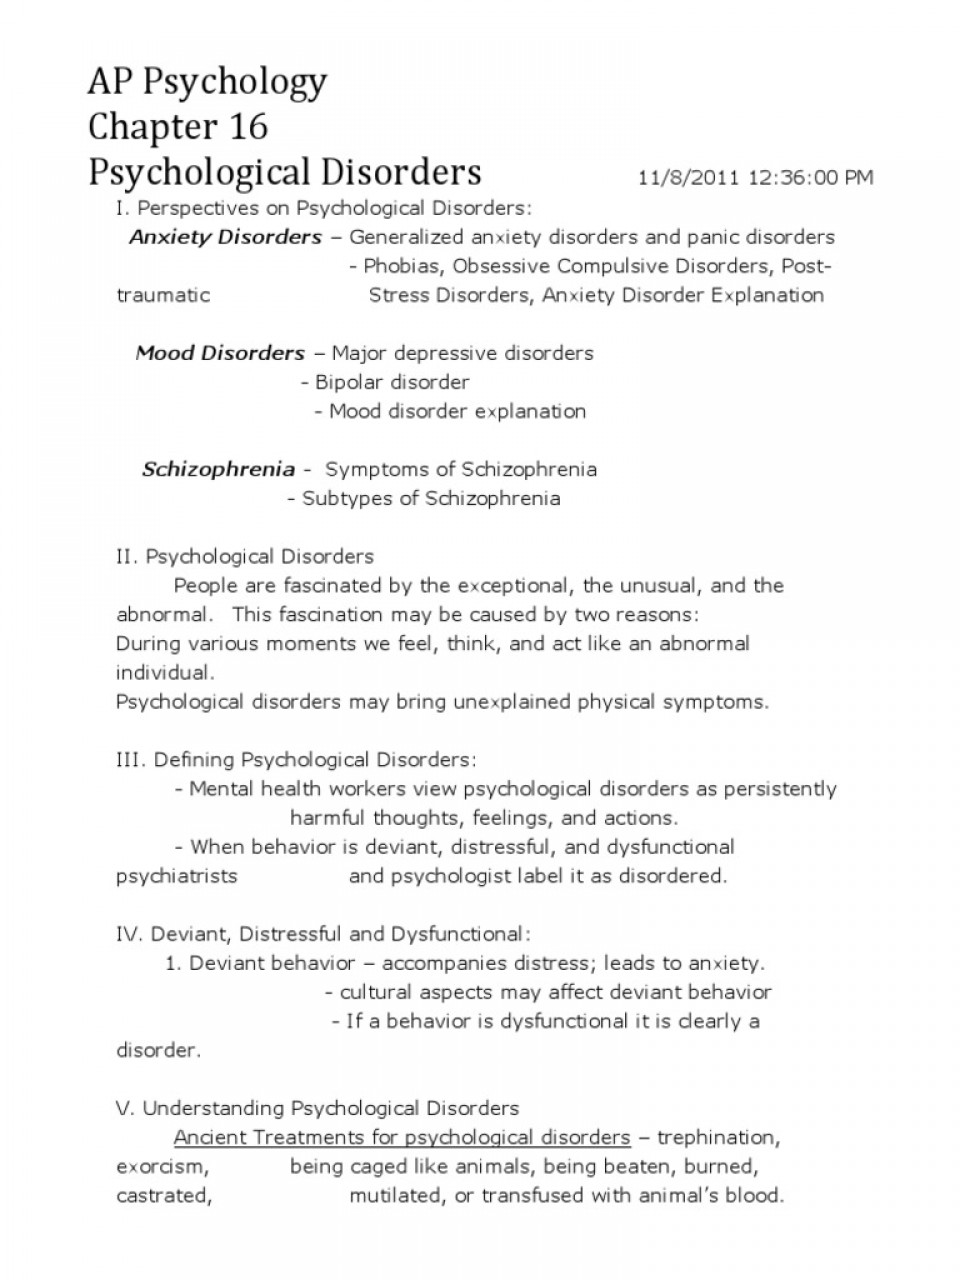 009 Psychology Research Paper Outline Bipolar Disorder Essay Topics Title Pdf College Introduction Question Conclusion Best Apa Forensic 960